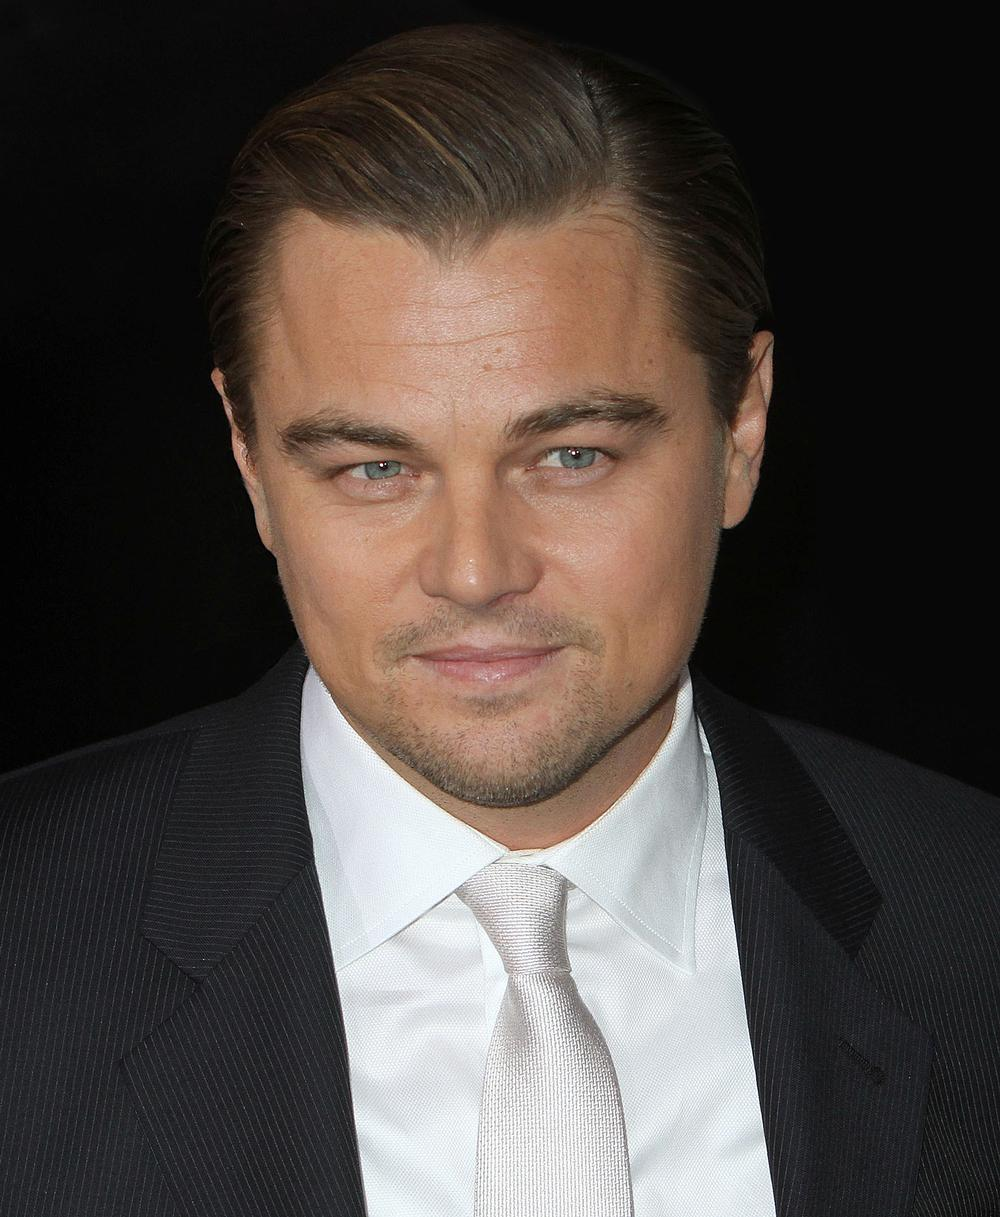 DiCaprio joined the Delos advisory board in November and is also an investor in the firm / shutterstock.com/JStone